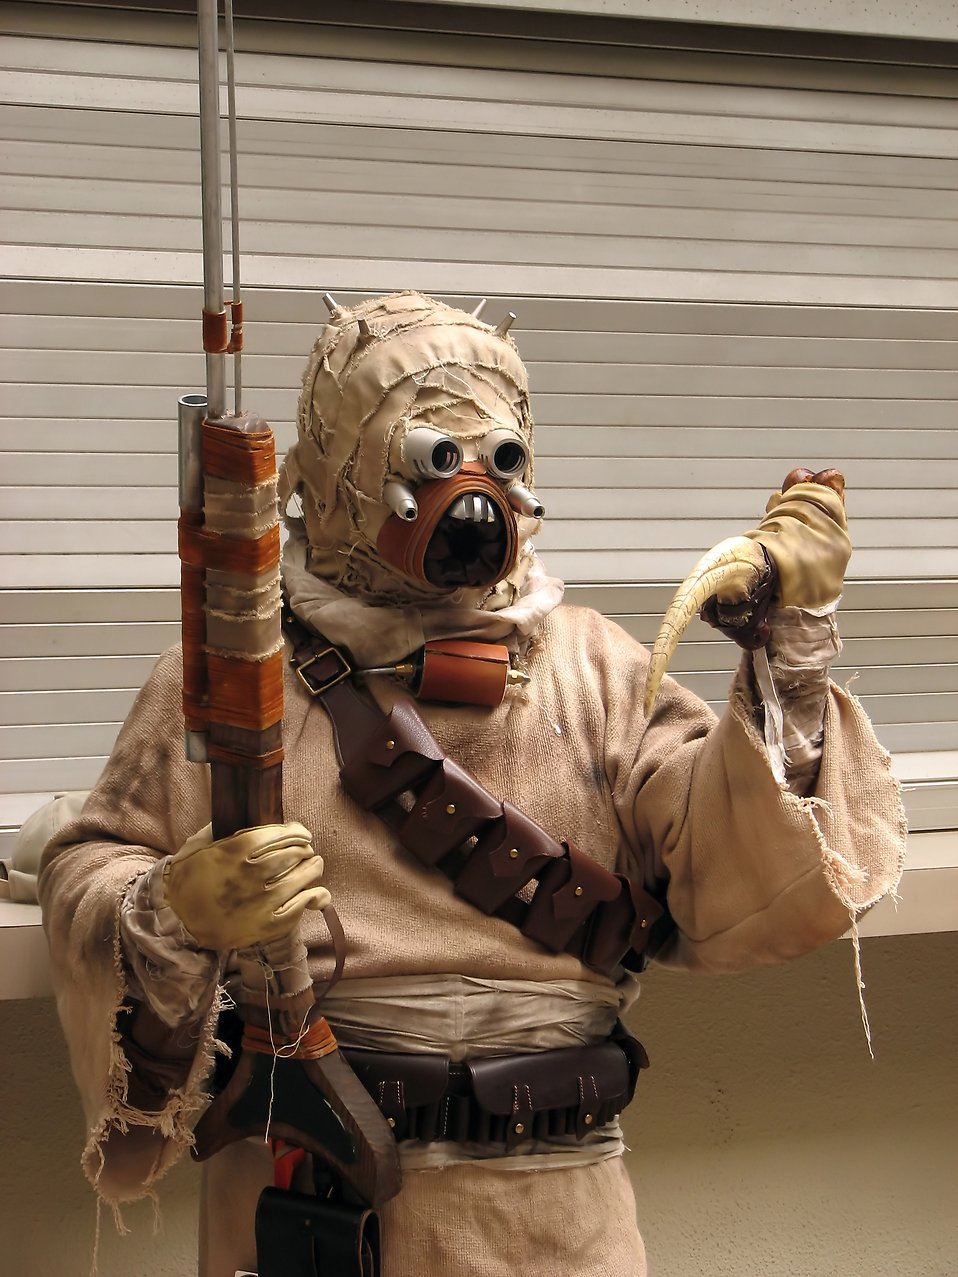 A Tusken Raider costume at Dragoncon 2009 in Atlanta, Georgia : Free Stock Photo